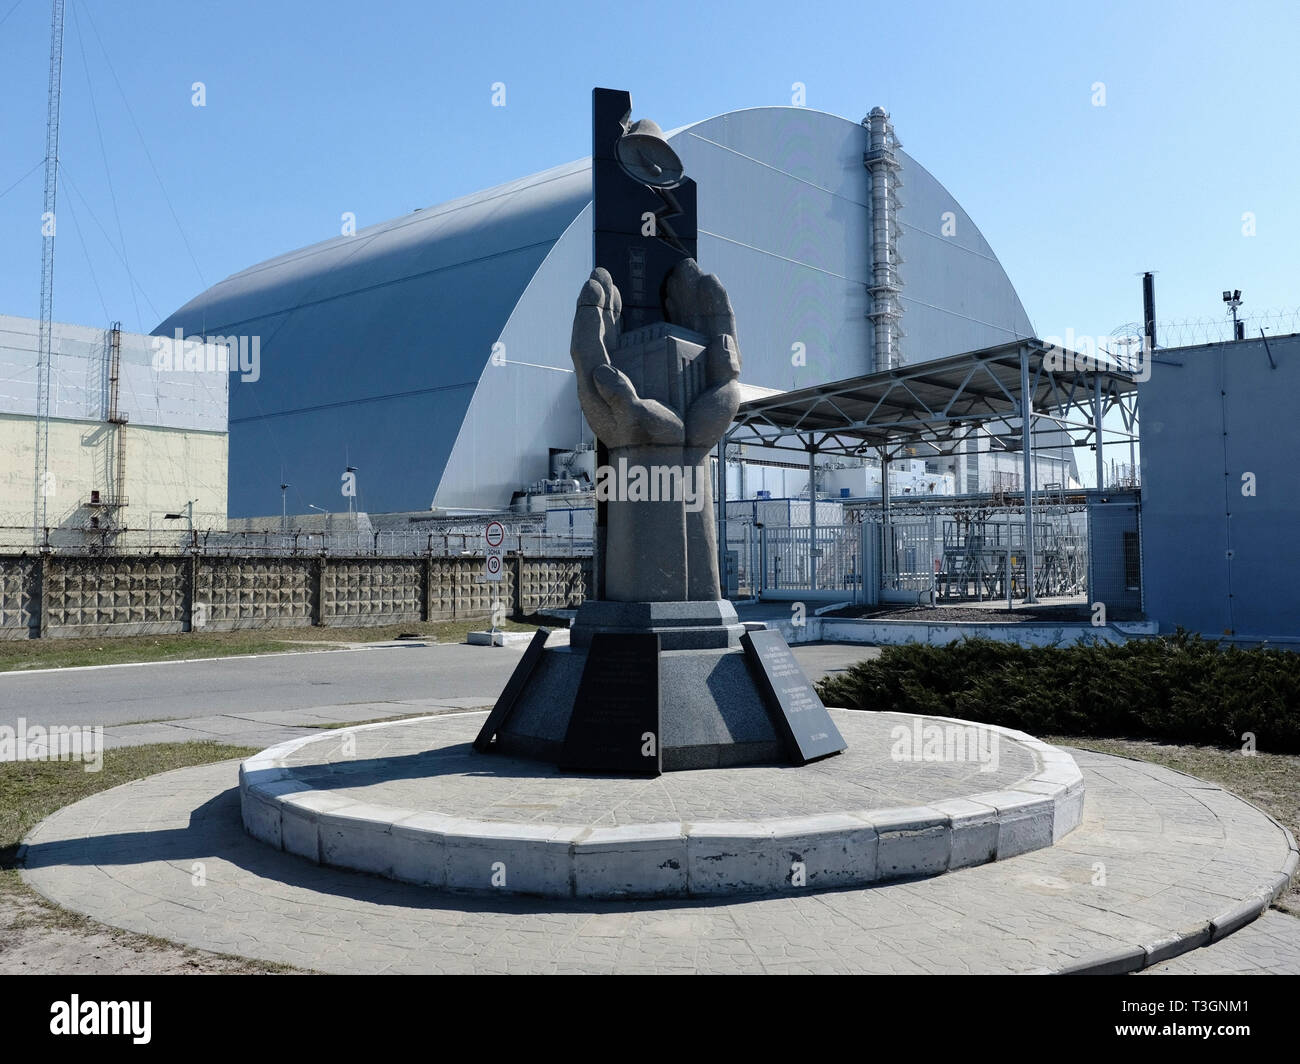 Chernobyl Nuclear Power Plant, April 2019 - Stock Image